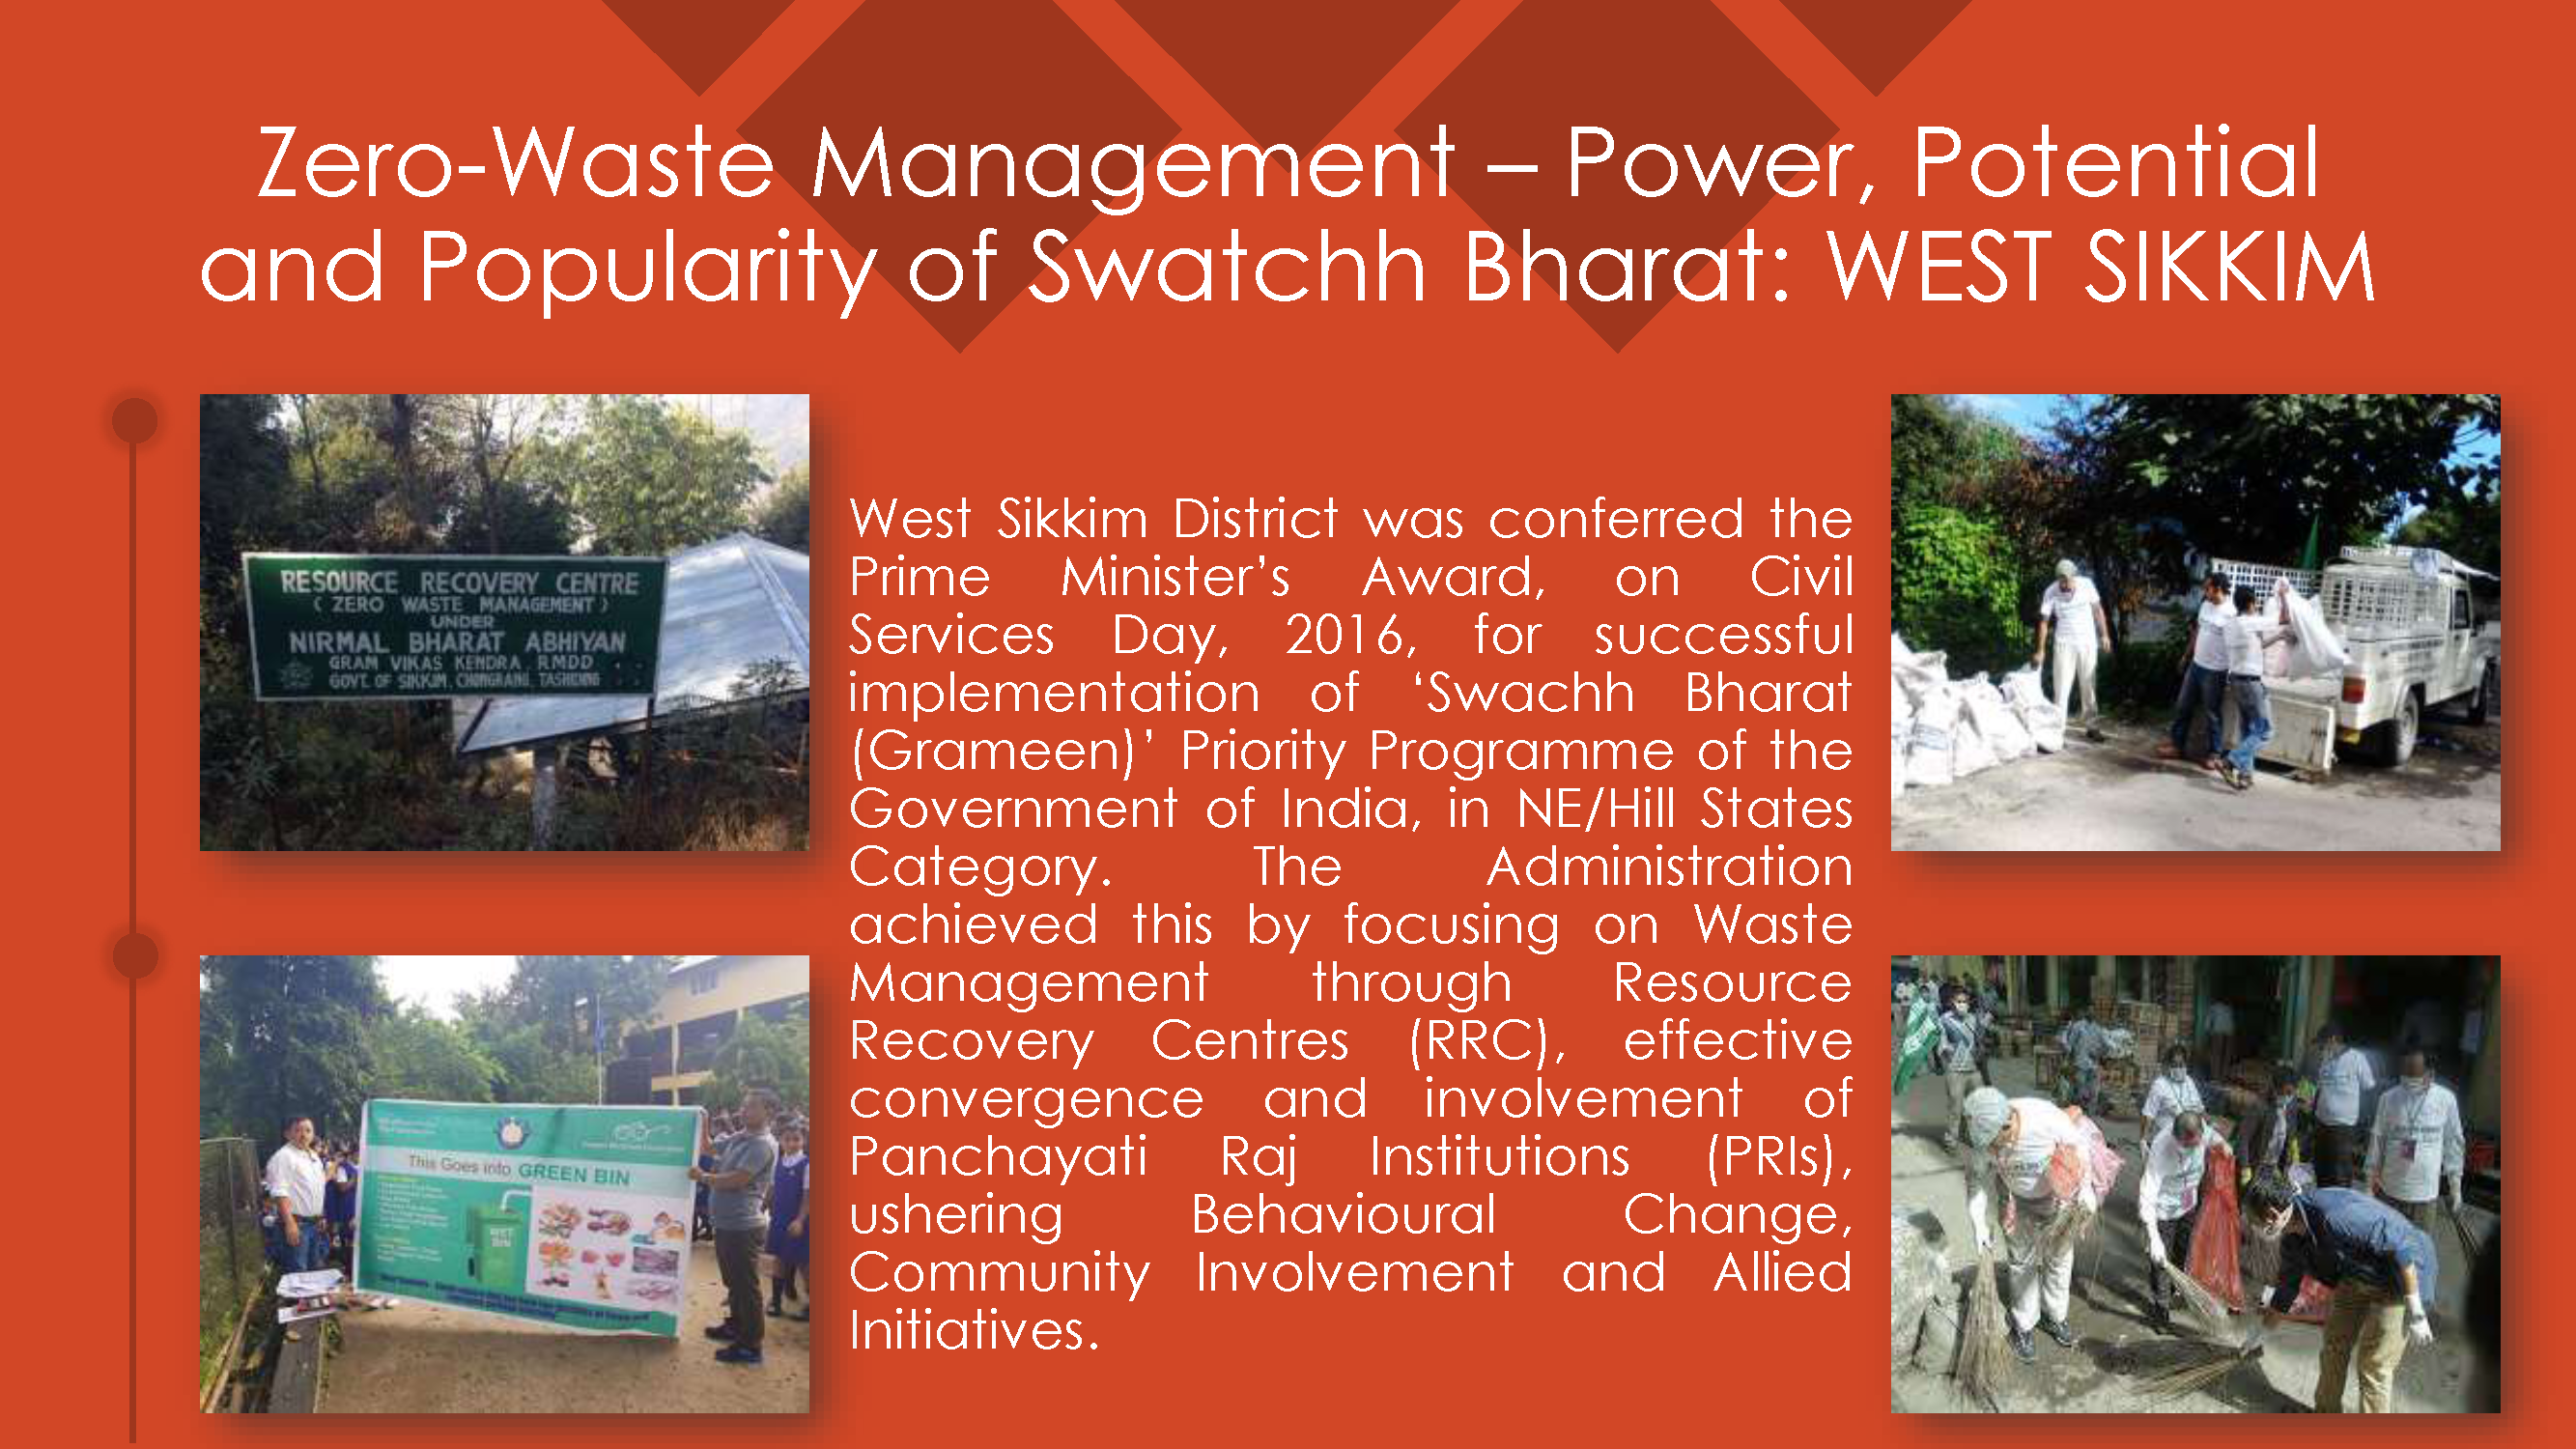 Zero Waste Management- Power, Potential and Popularity of